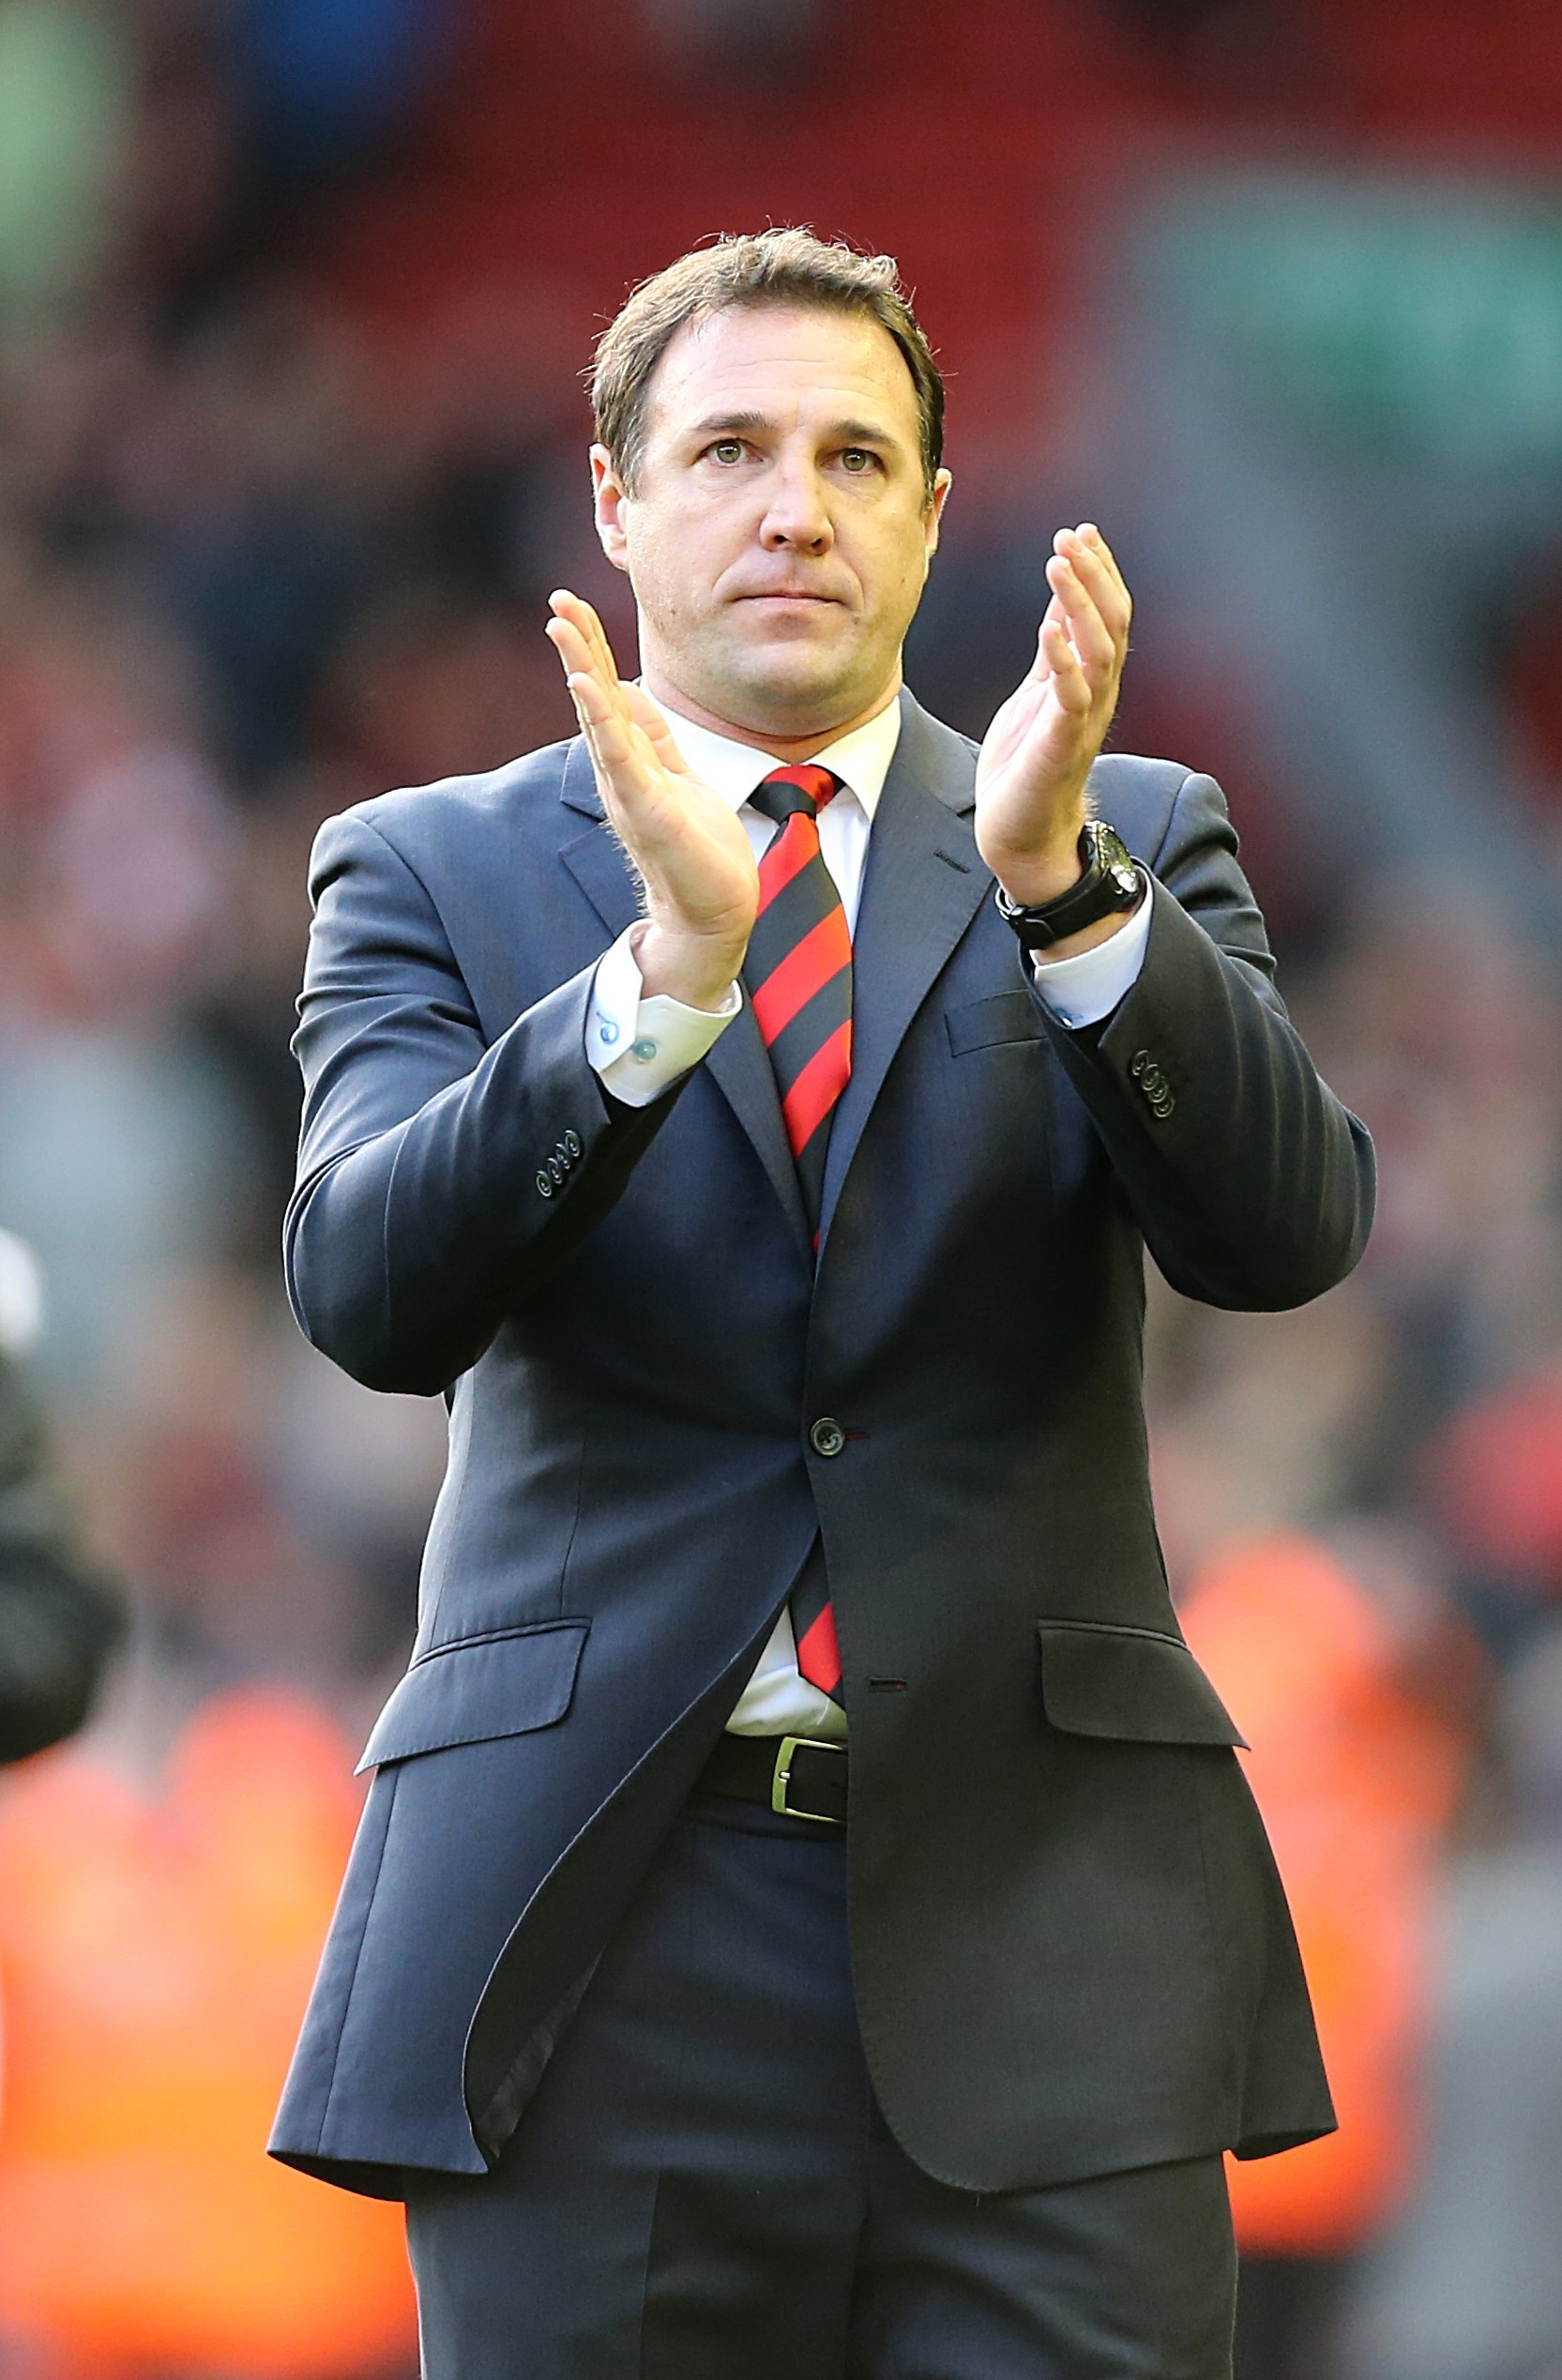 Malky Mackay had looked set to become next Crystal Palace